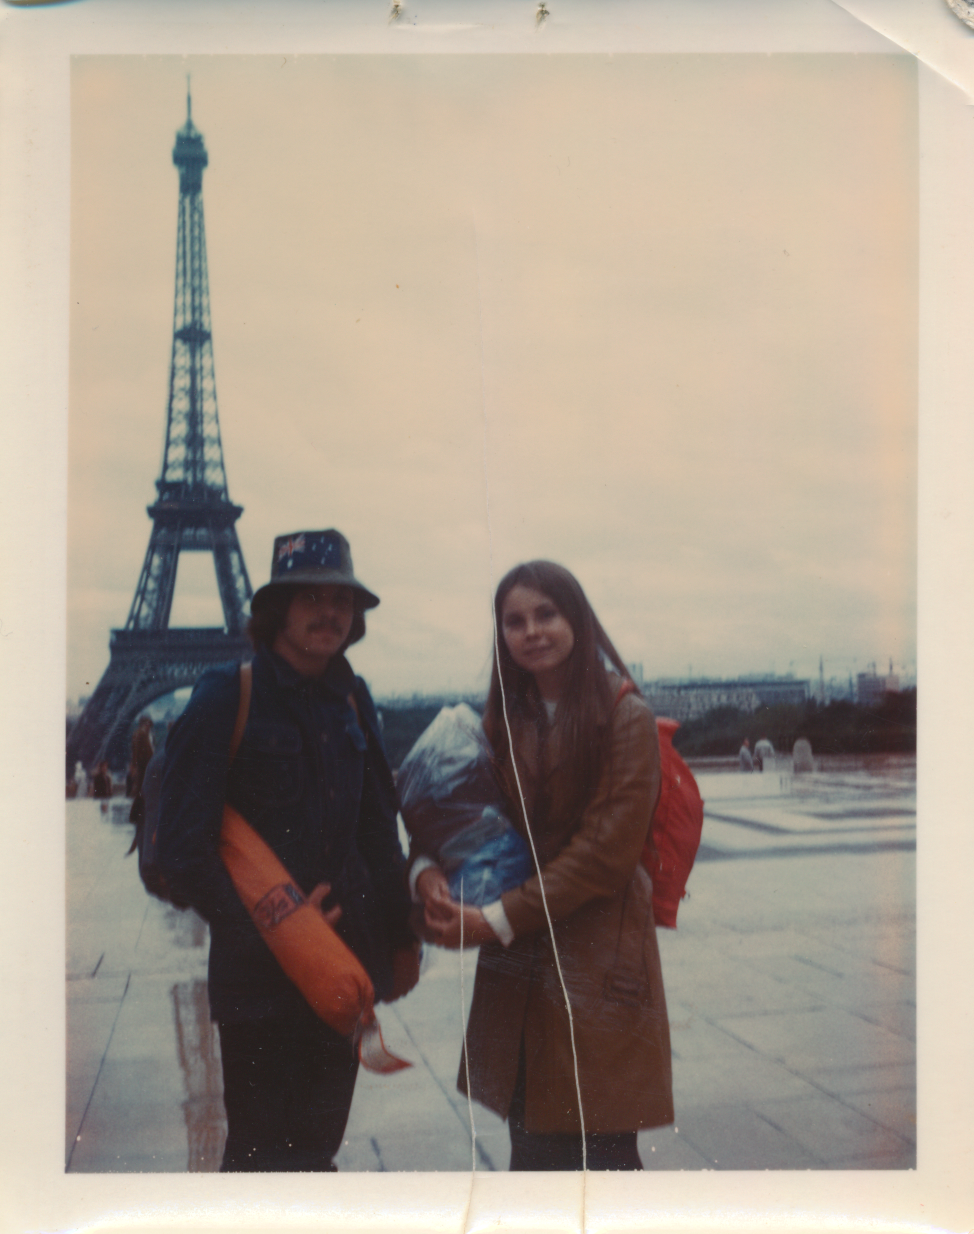 With cousin Cindy in Paris, 1972